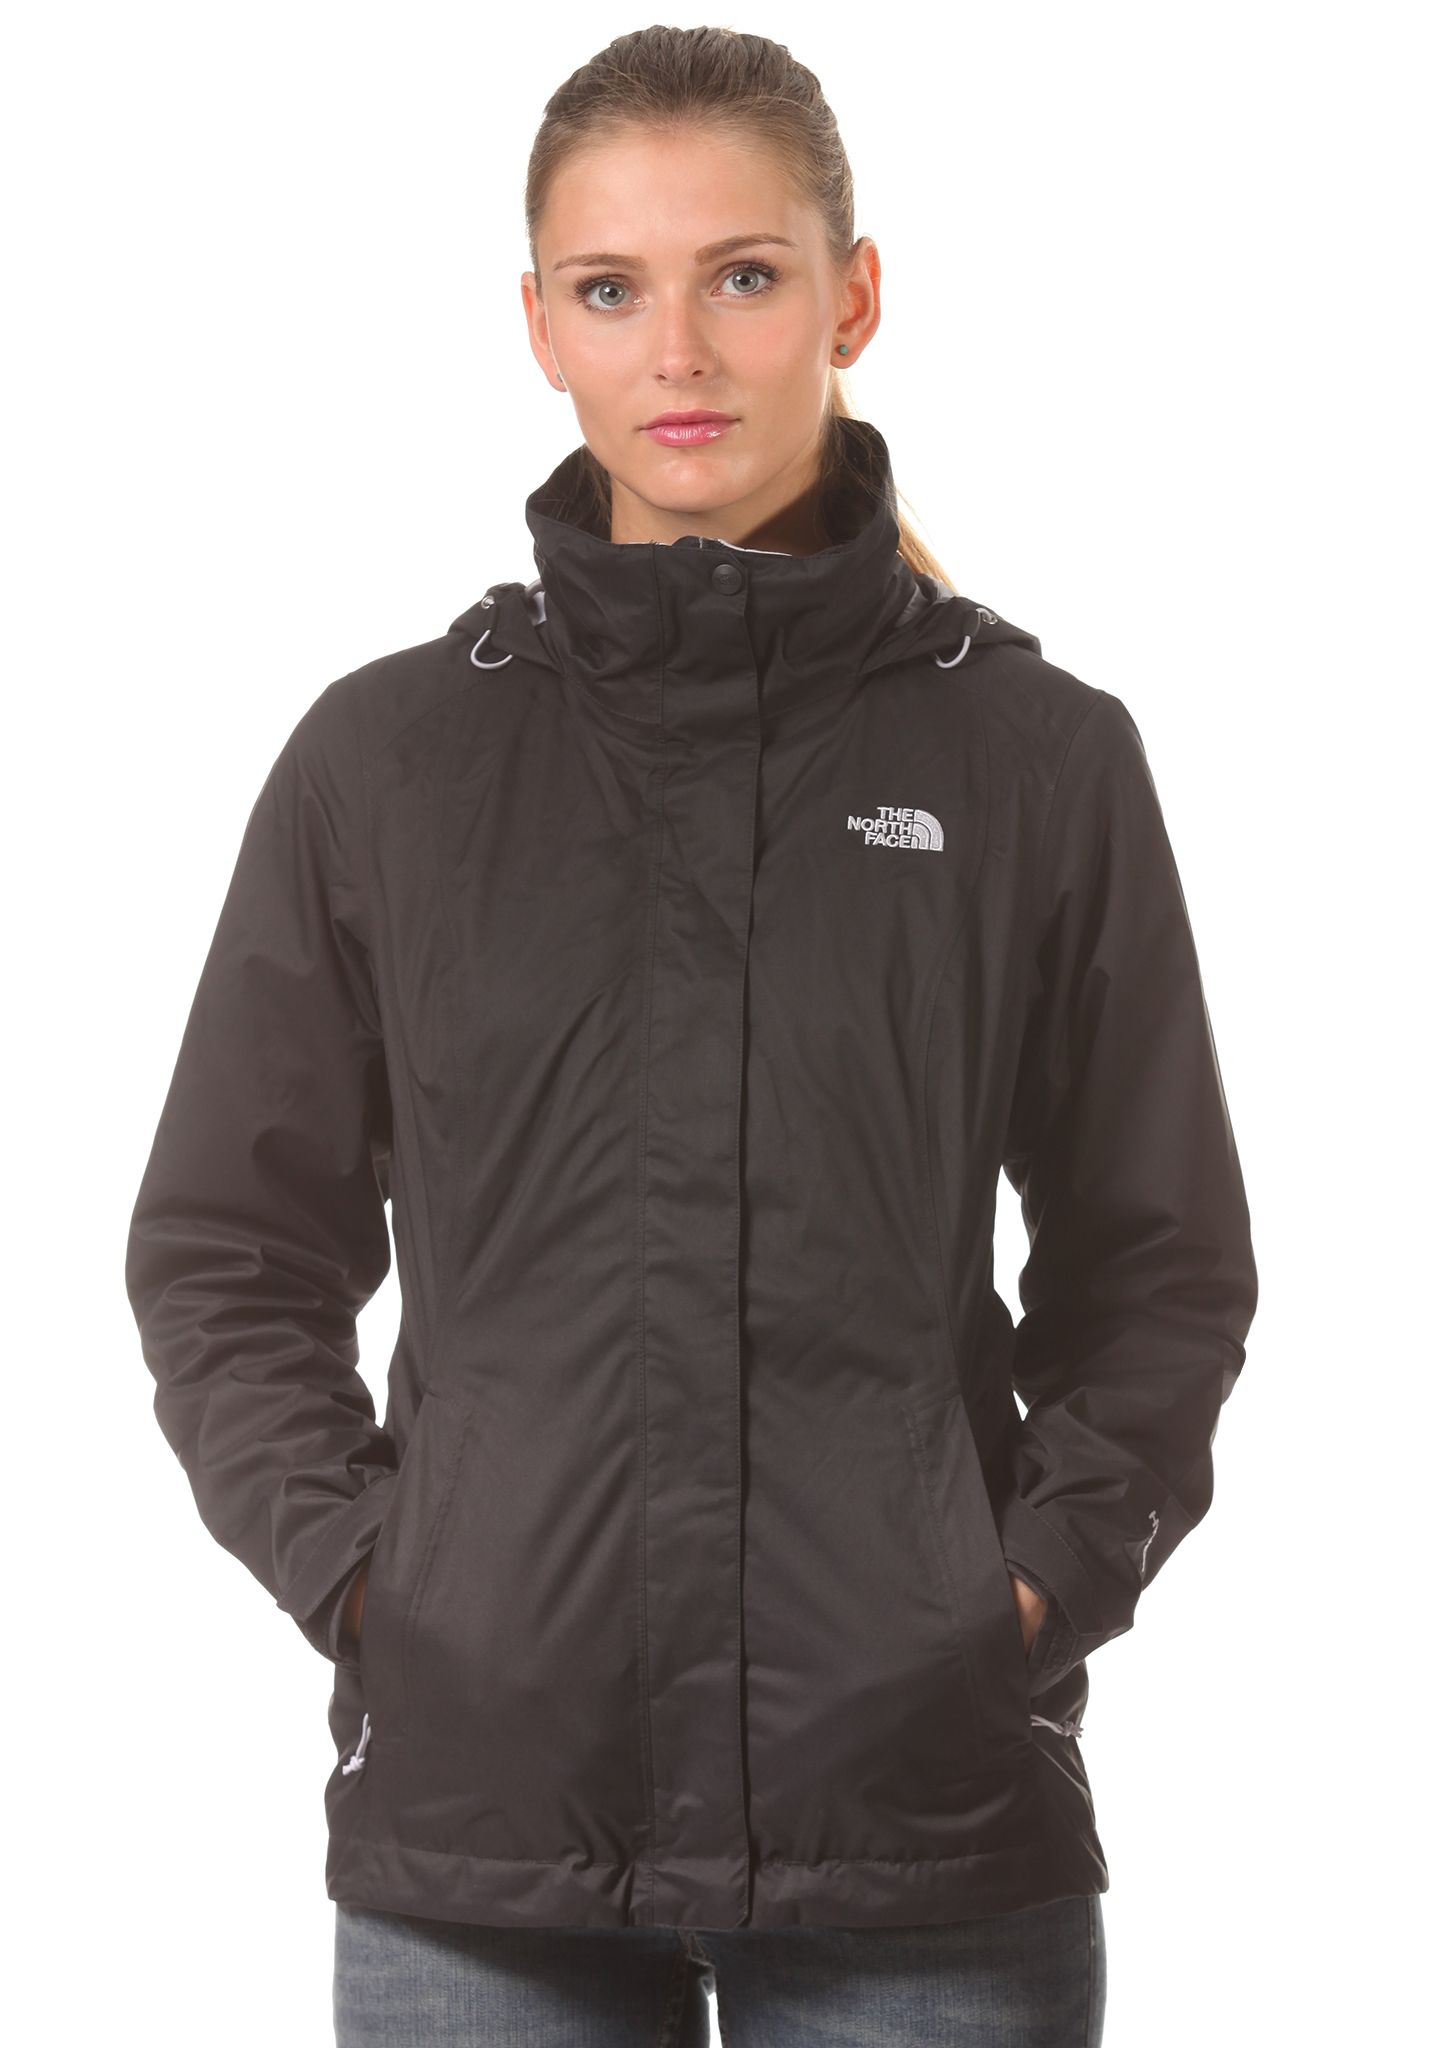 8318446b3 THE NORTH FACE Evolve II Triclimate - Outdoor Jacket for Women - Black